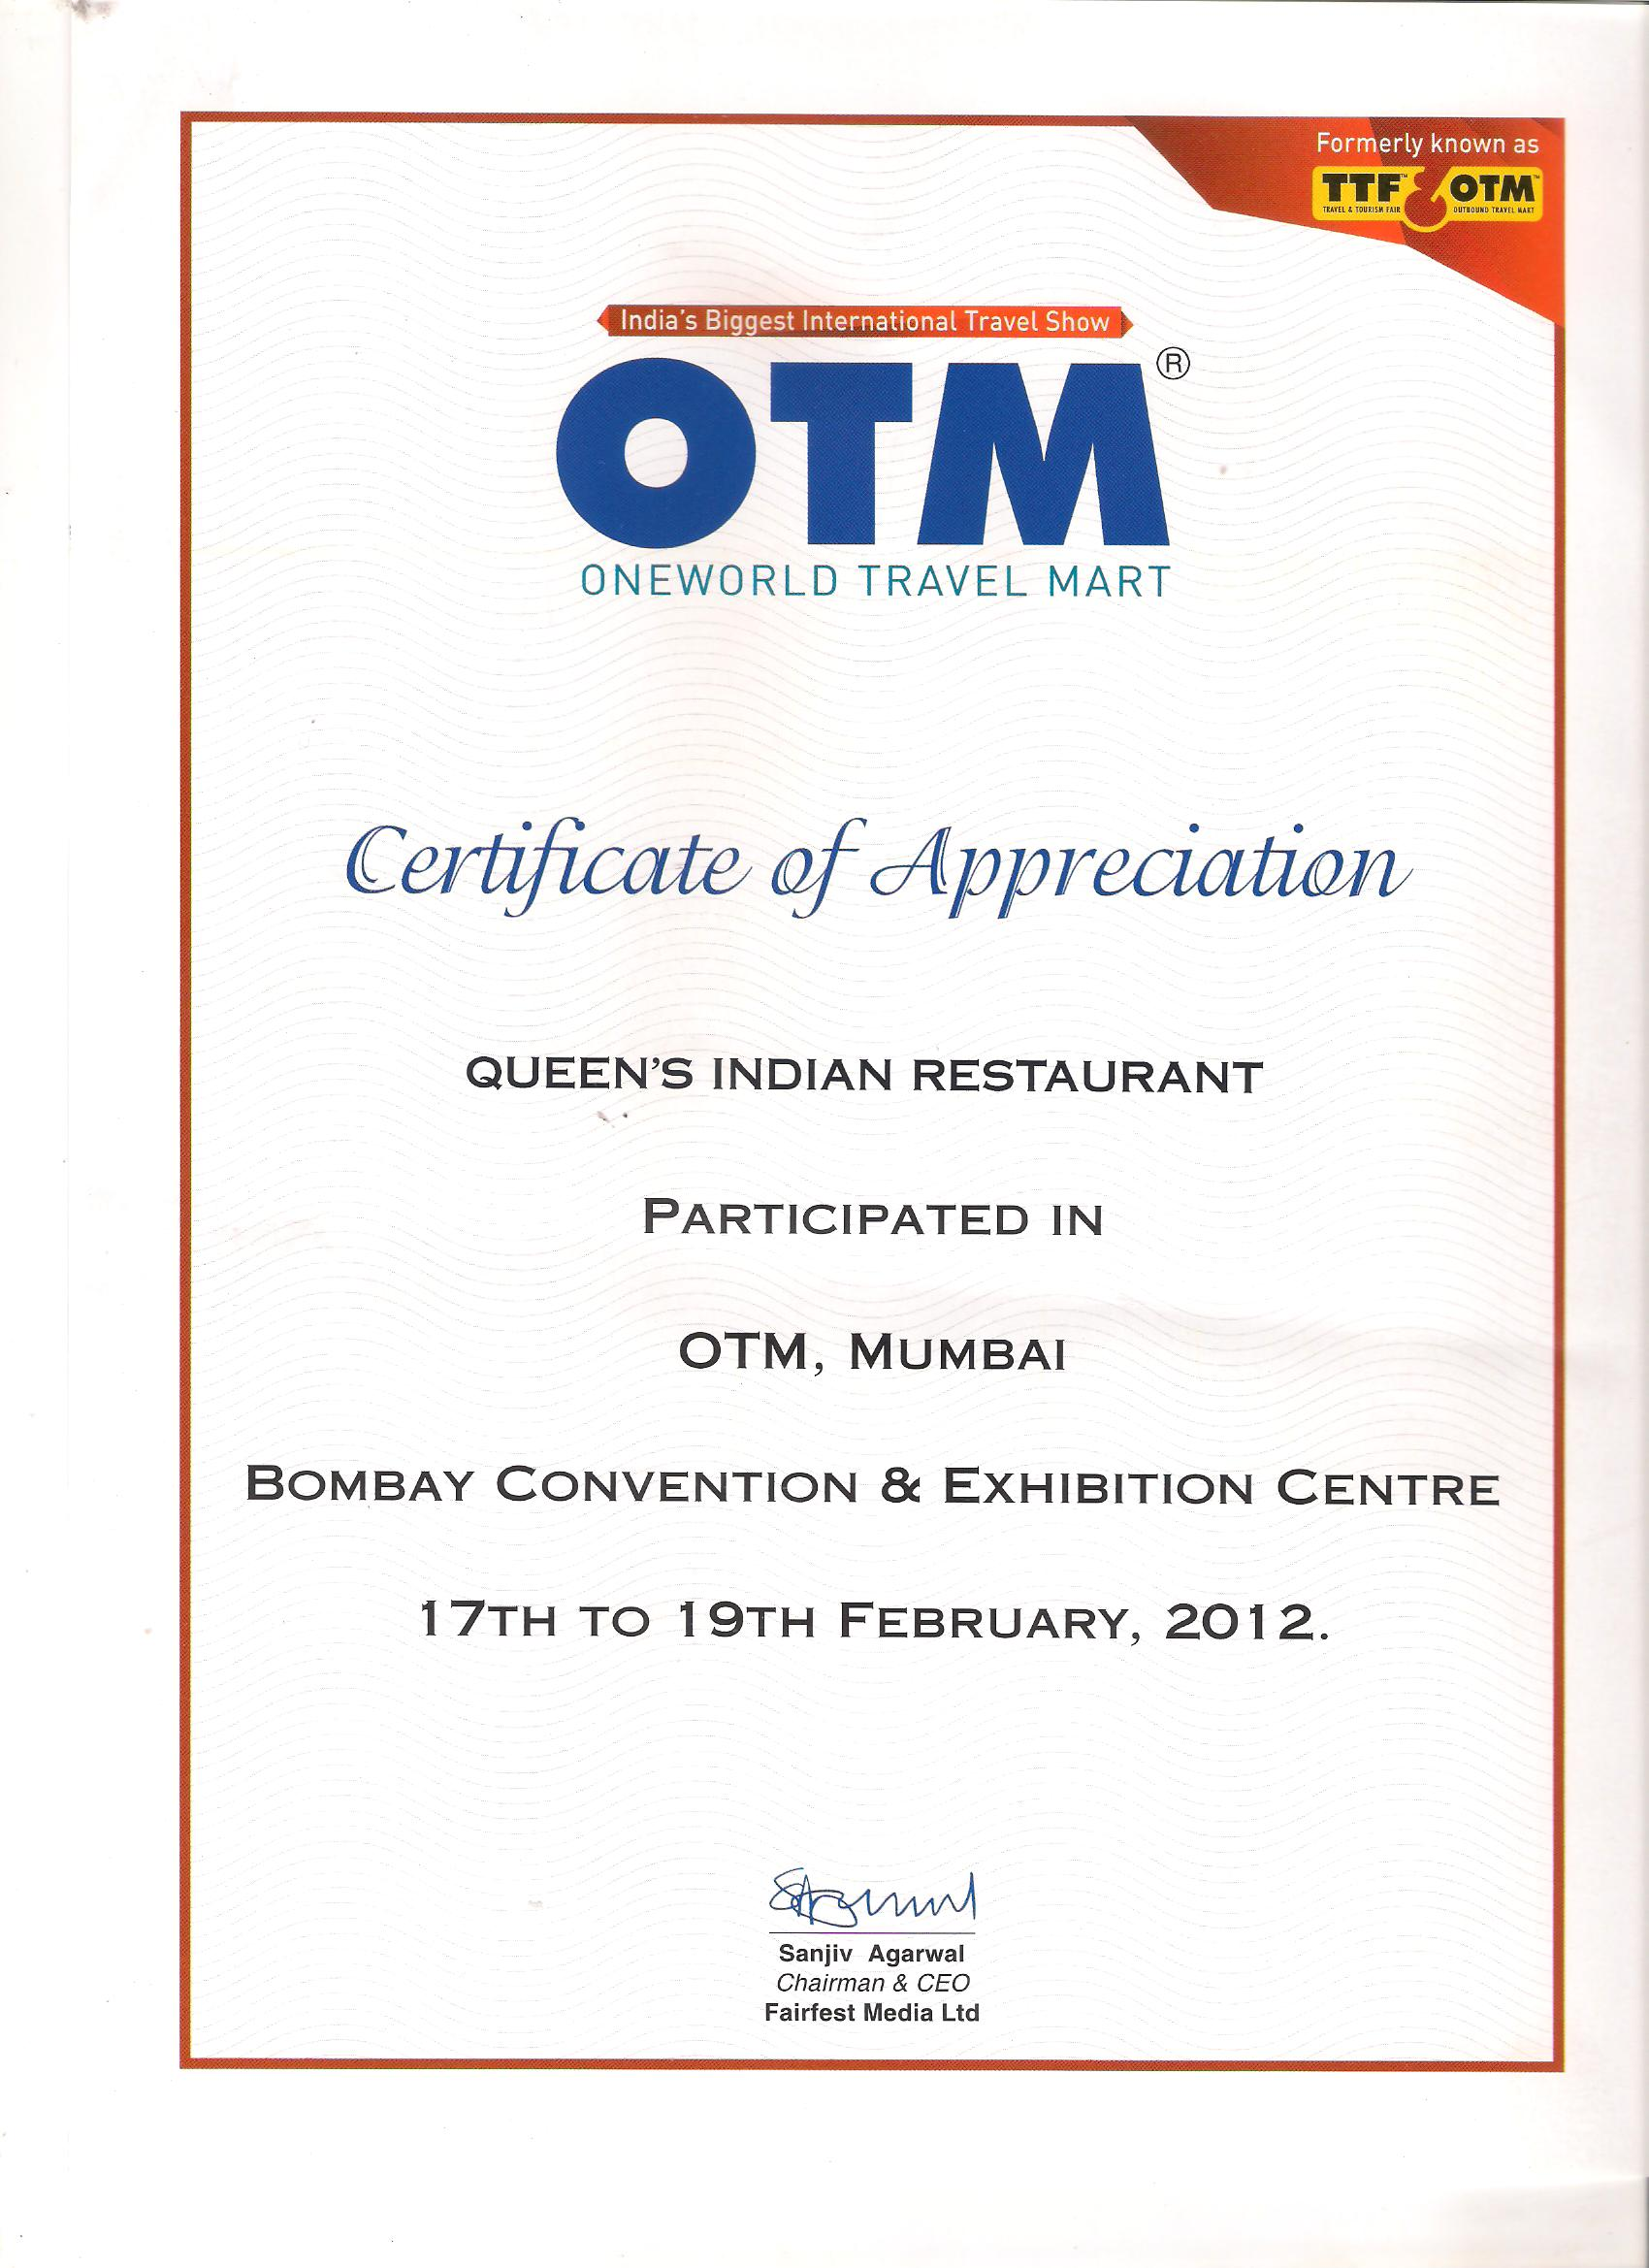 Appreciation for Convention & Exhibition from OTM (One Travel Mart) 2012